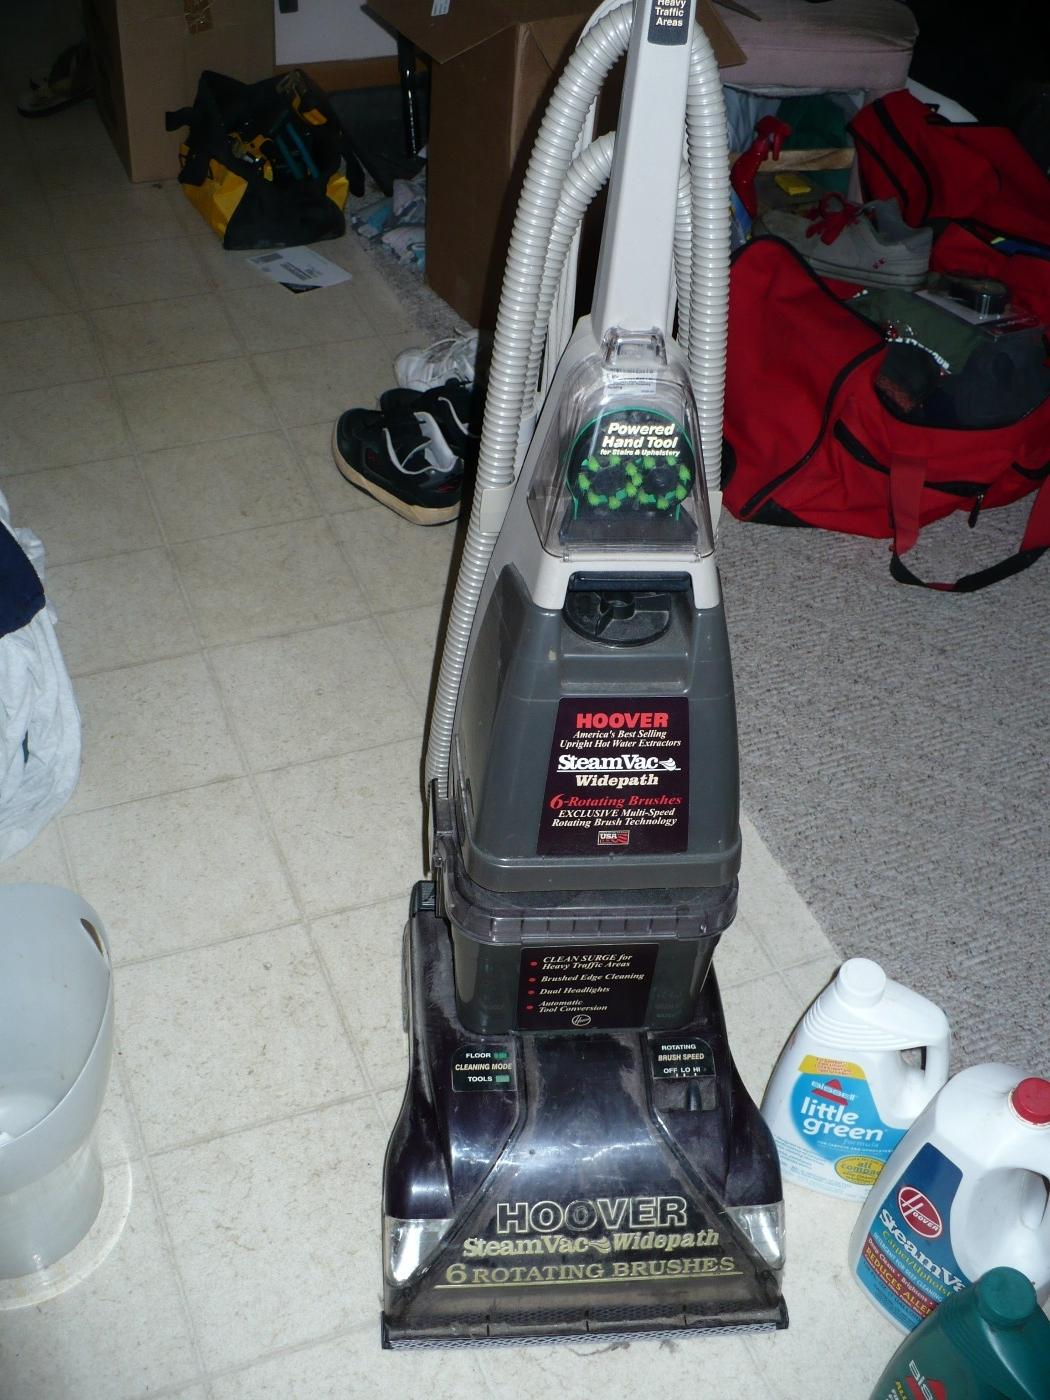 Best Hoover F6020 900 Steamvac Upright Deep Cleaner With